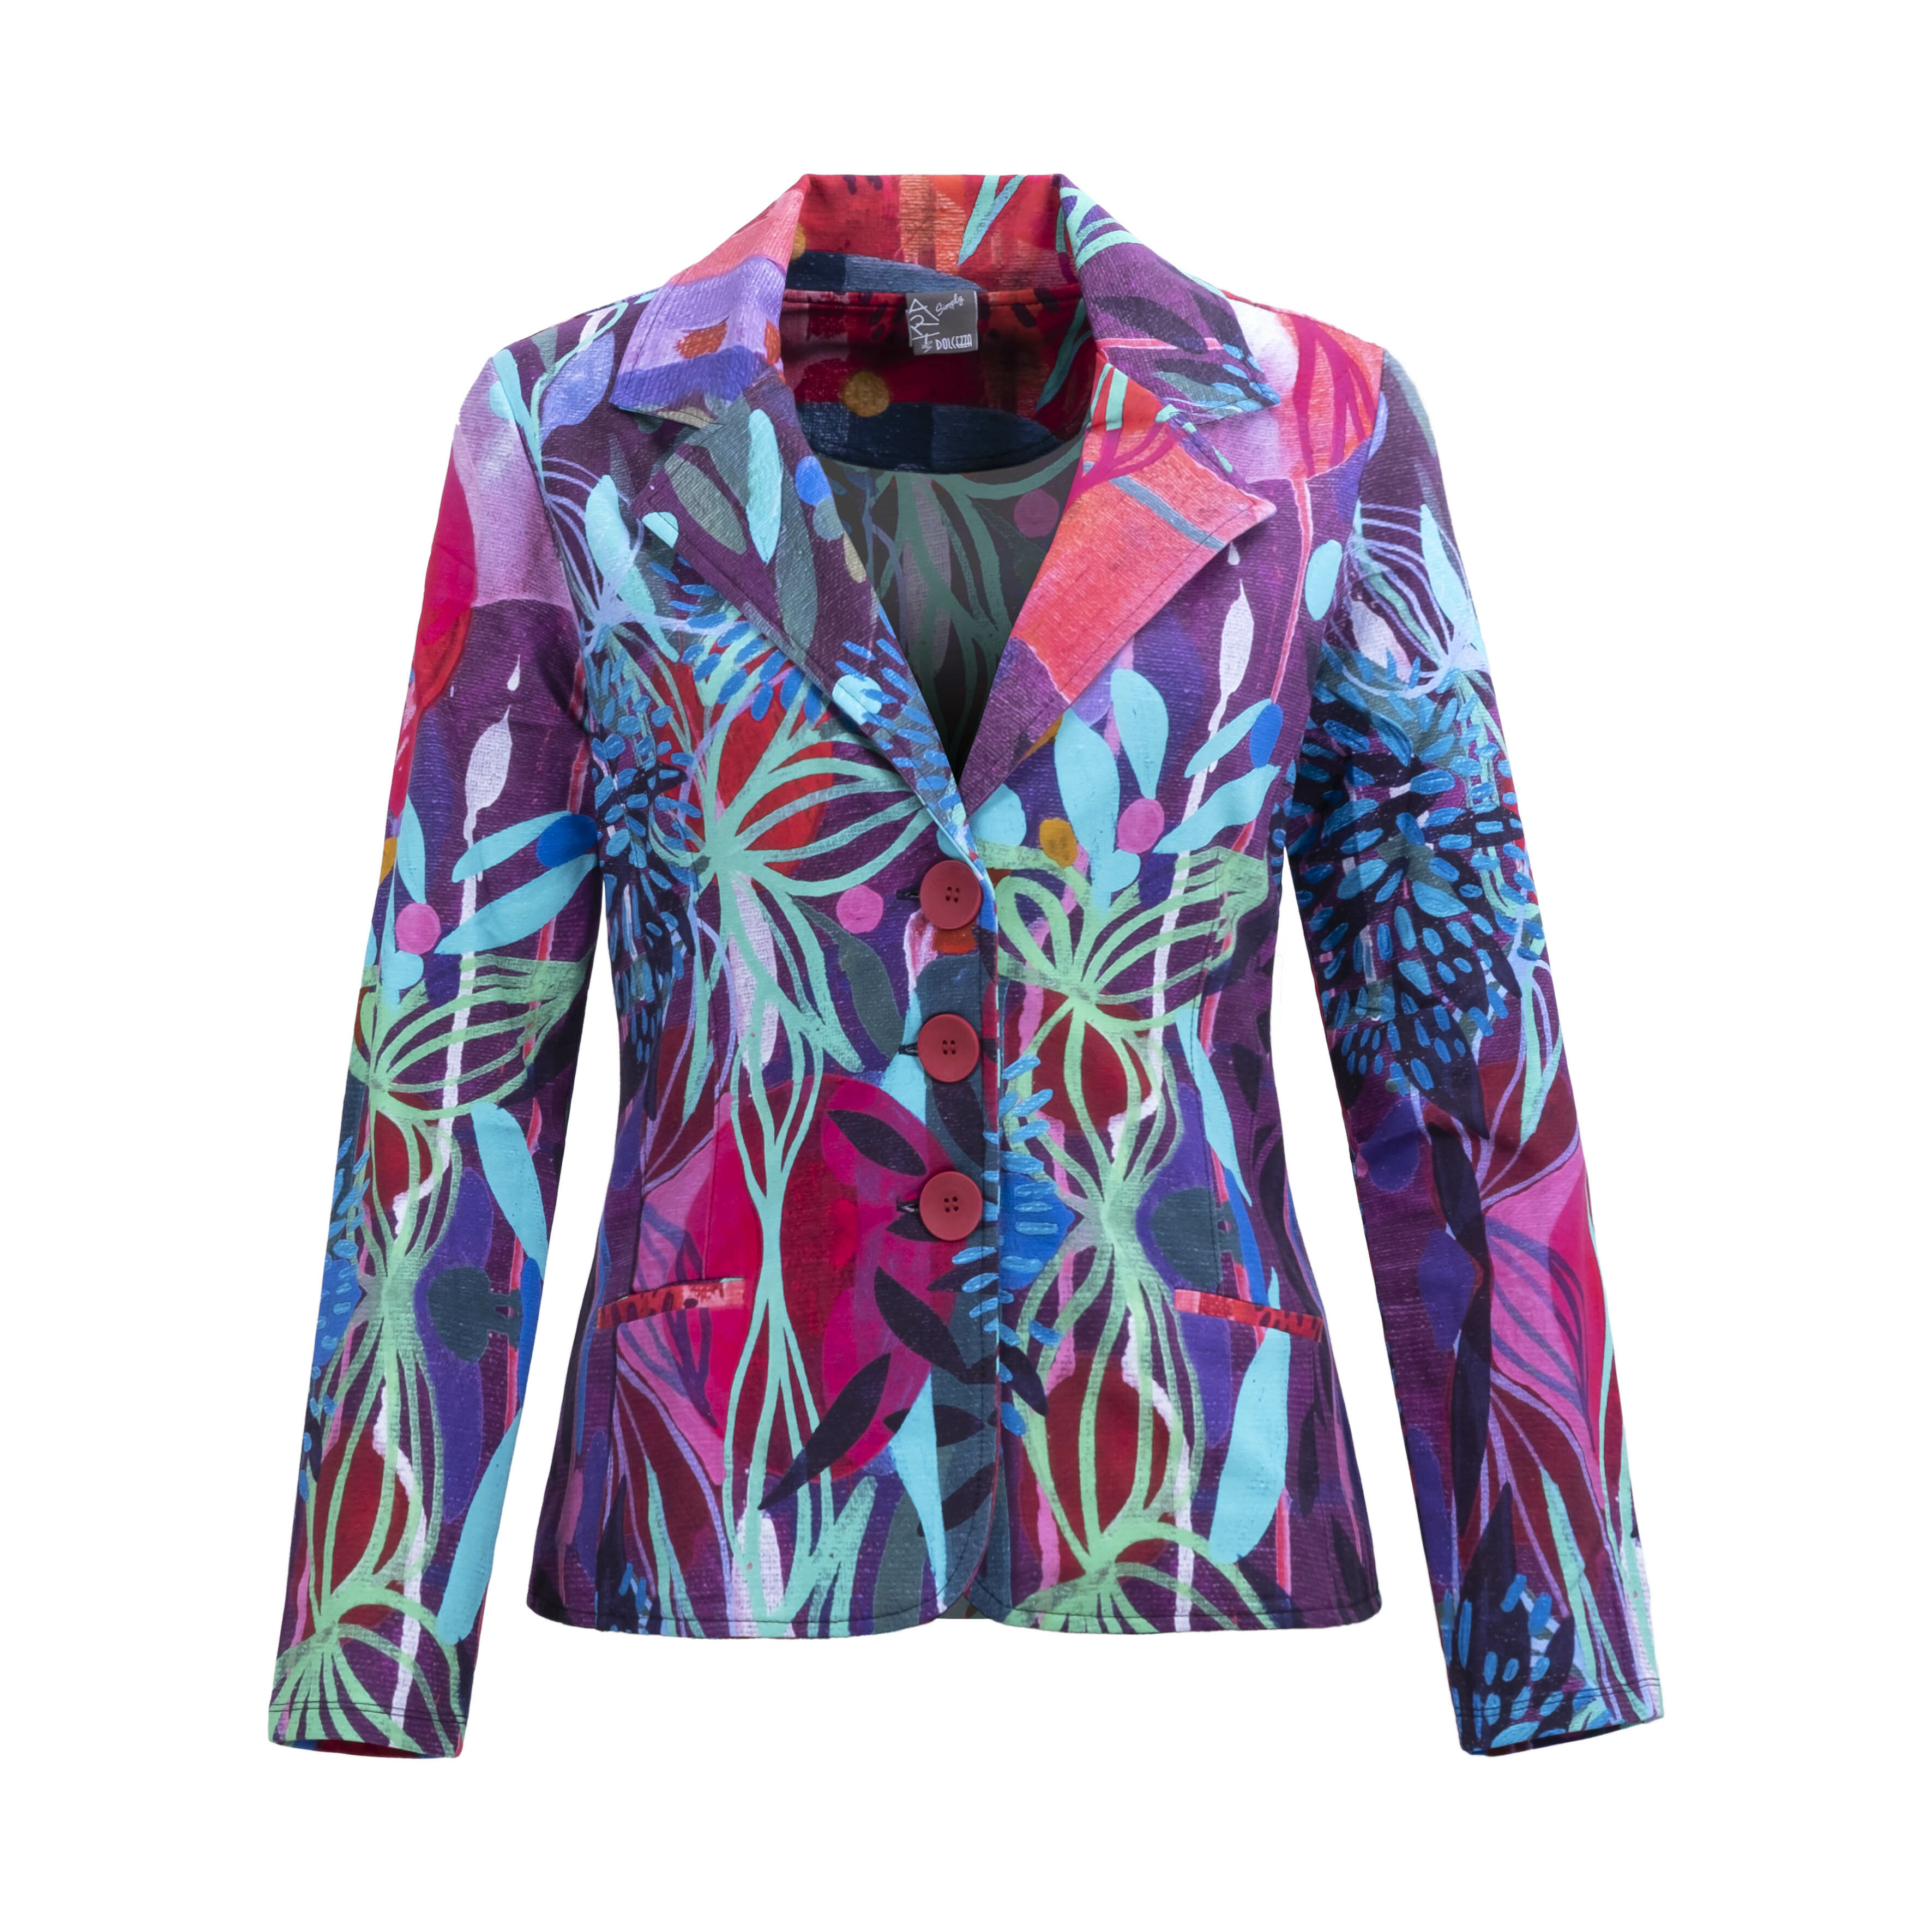 Simply Art Dolcezza: Color & Joy Tangle Of Leaves Abstract Art Blazer